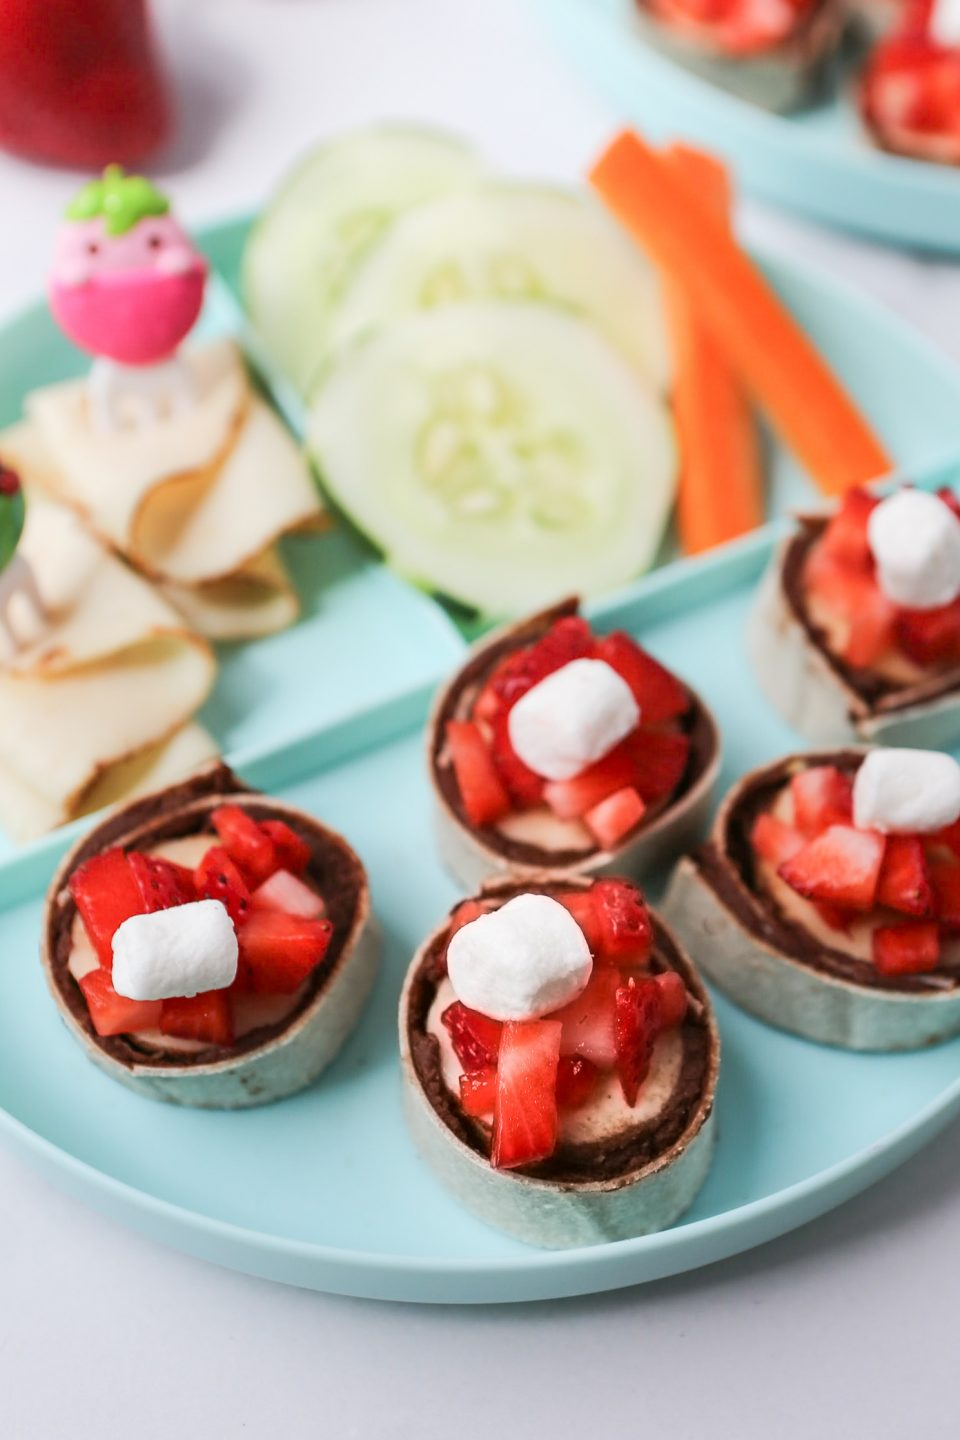 A 90 degree angle photo of banana/chocolate roll-ups with strawberries. Places on blue plates with veggies and turkey in the background.